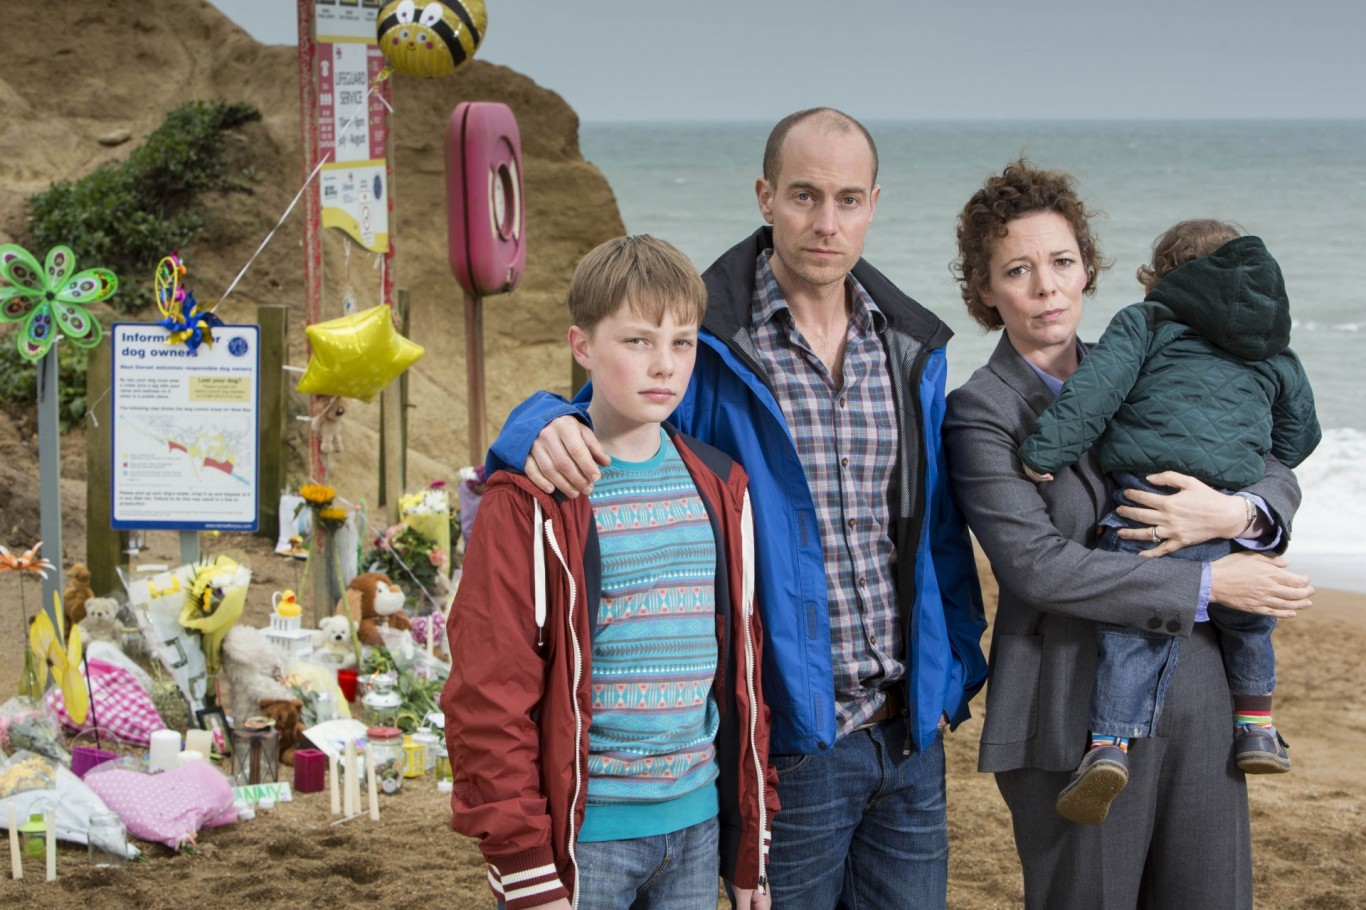 Matthew Gravelle has no idea how Broadchurch series 2 will end